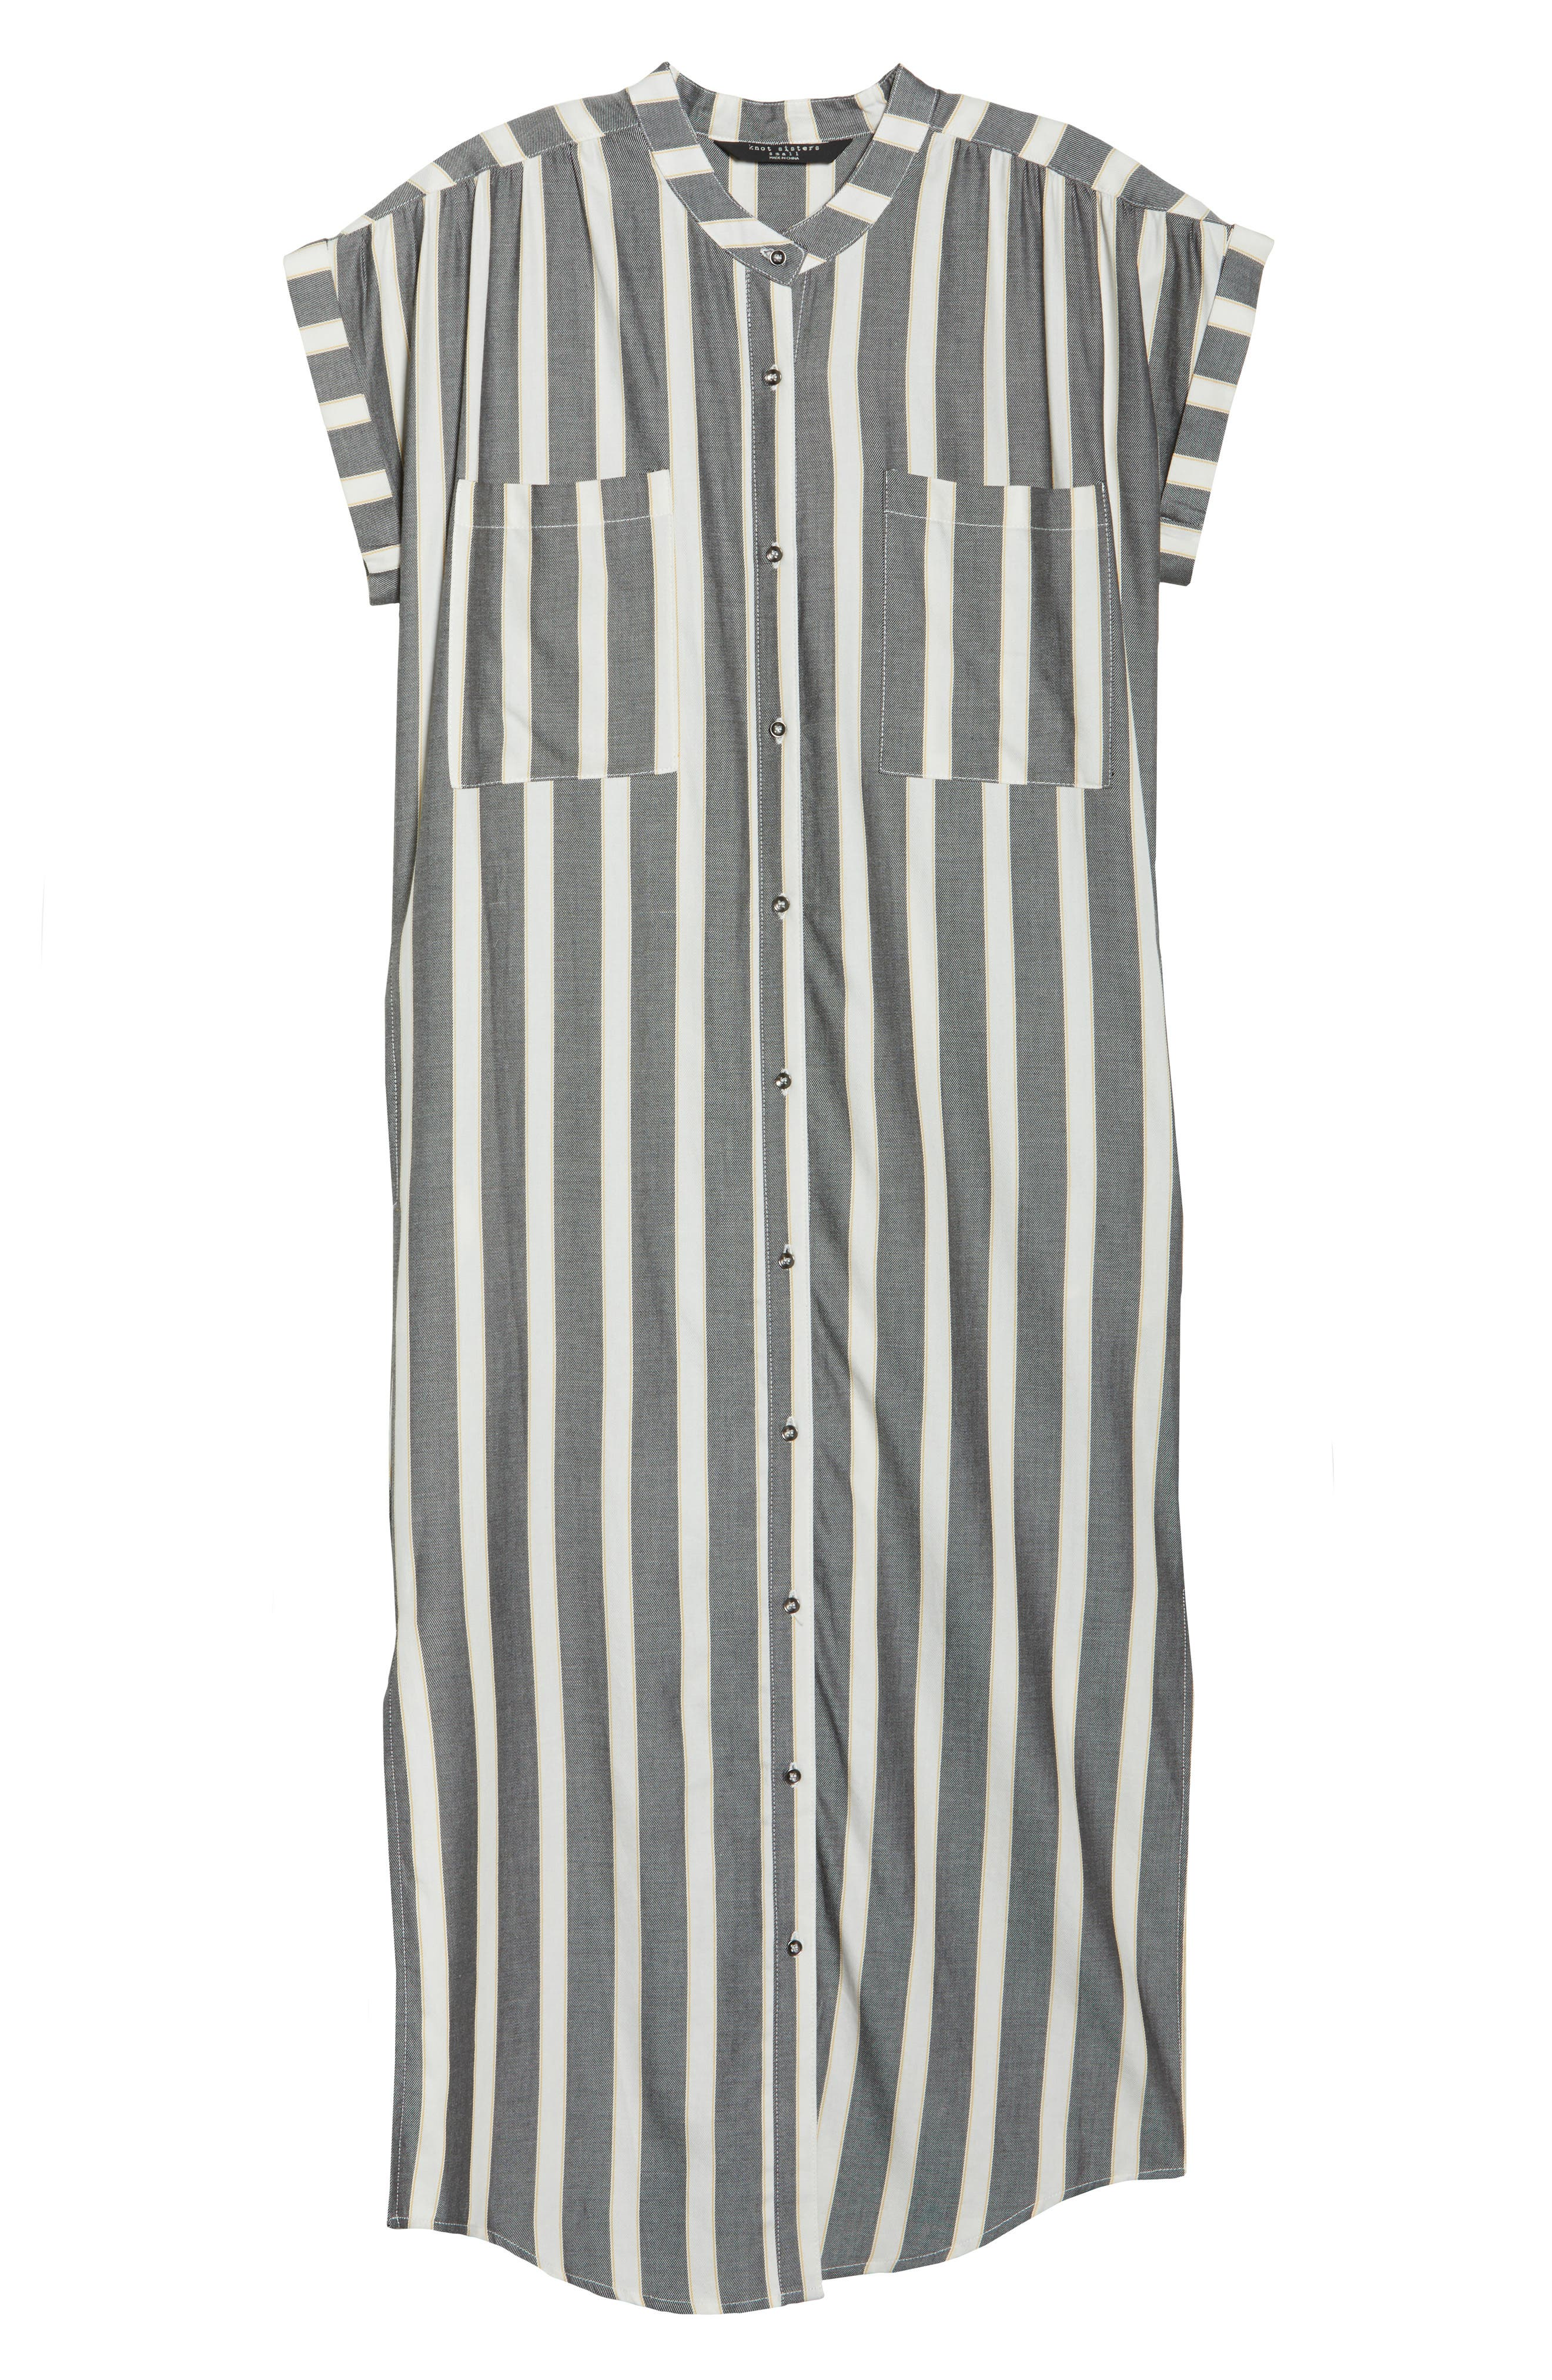 Haze Shirtdress,                             Alternate thumbnail 7, color,                             Black With Cream Stripe